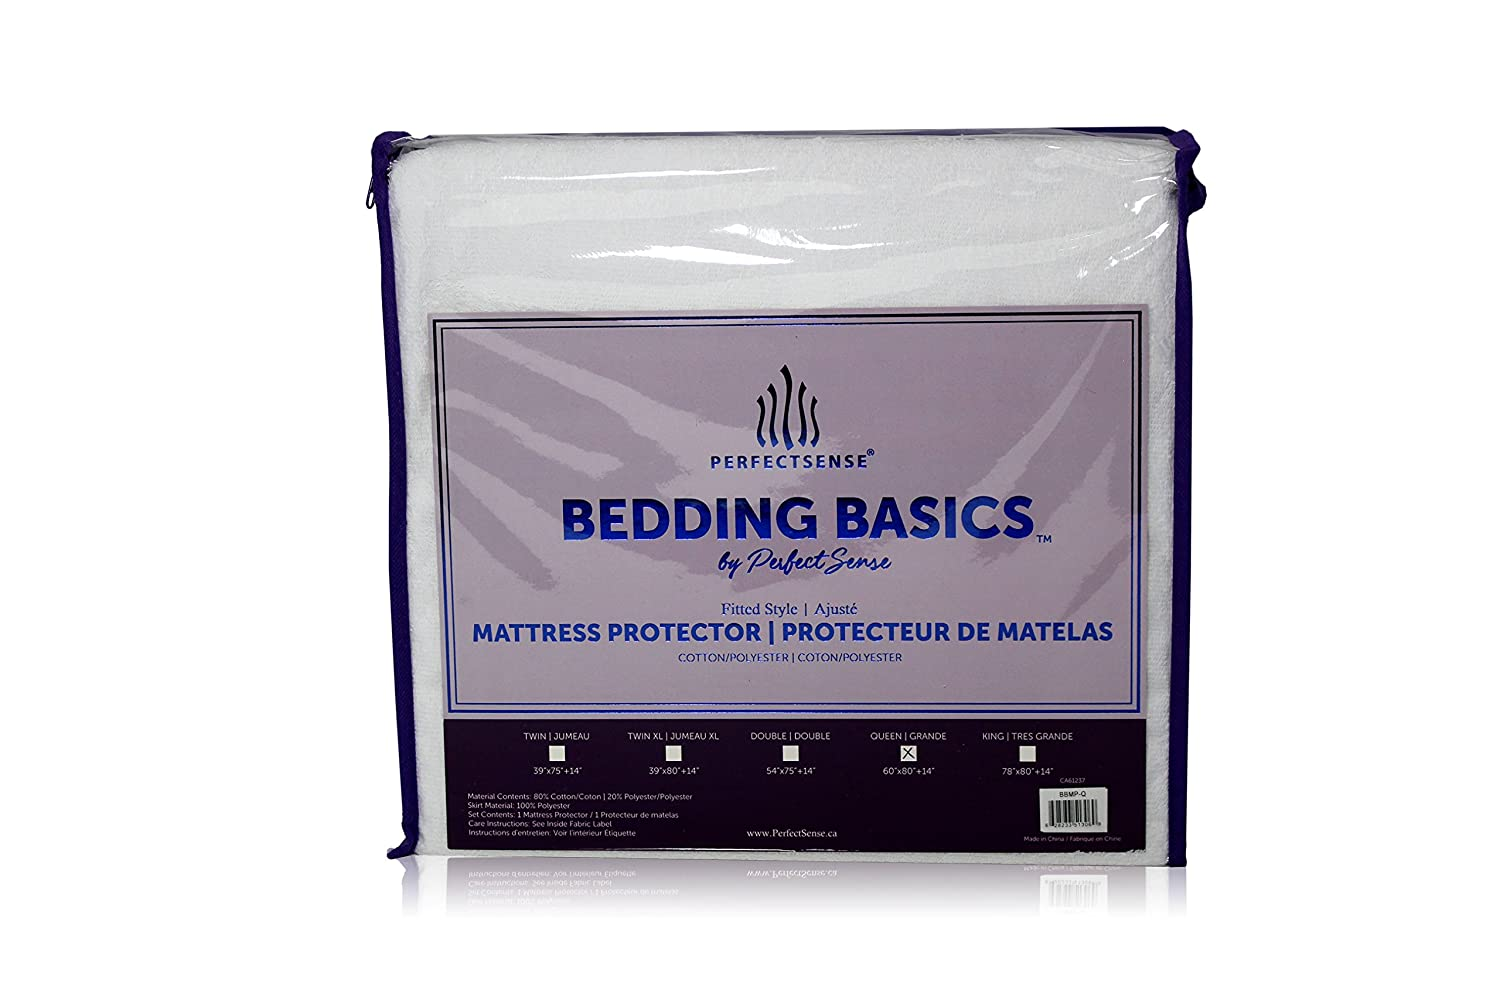 "Mattress Protector 1 Piece PerfectSense Basics Luxury Soft Breathable 100% Waterproof Mattress Cover Hypoallergenic Mattress Protector for Superior Comfort and Support with up to 18"" Deep Pocket Fitted Style Protector & Machine Washable, Vinyl PVC and"